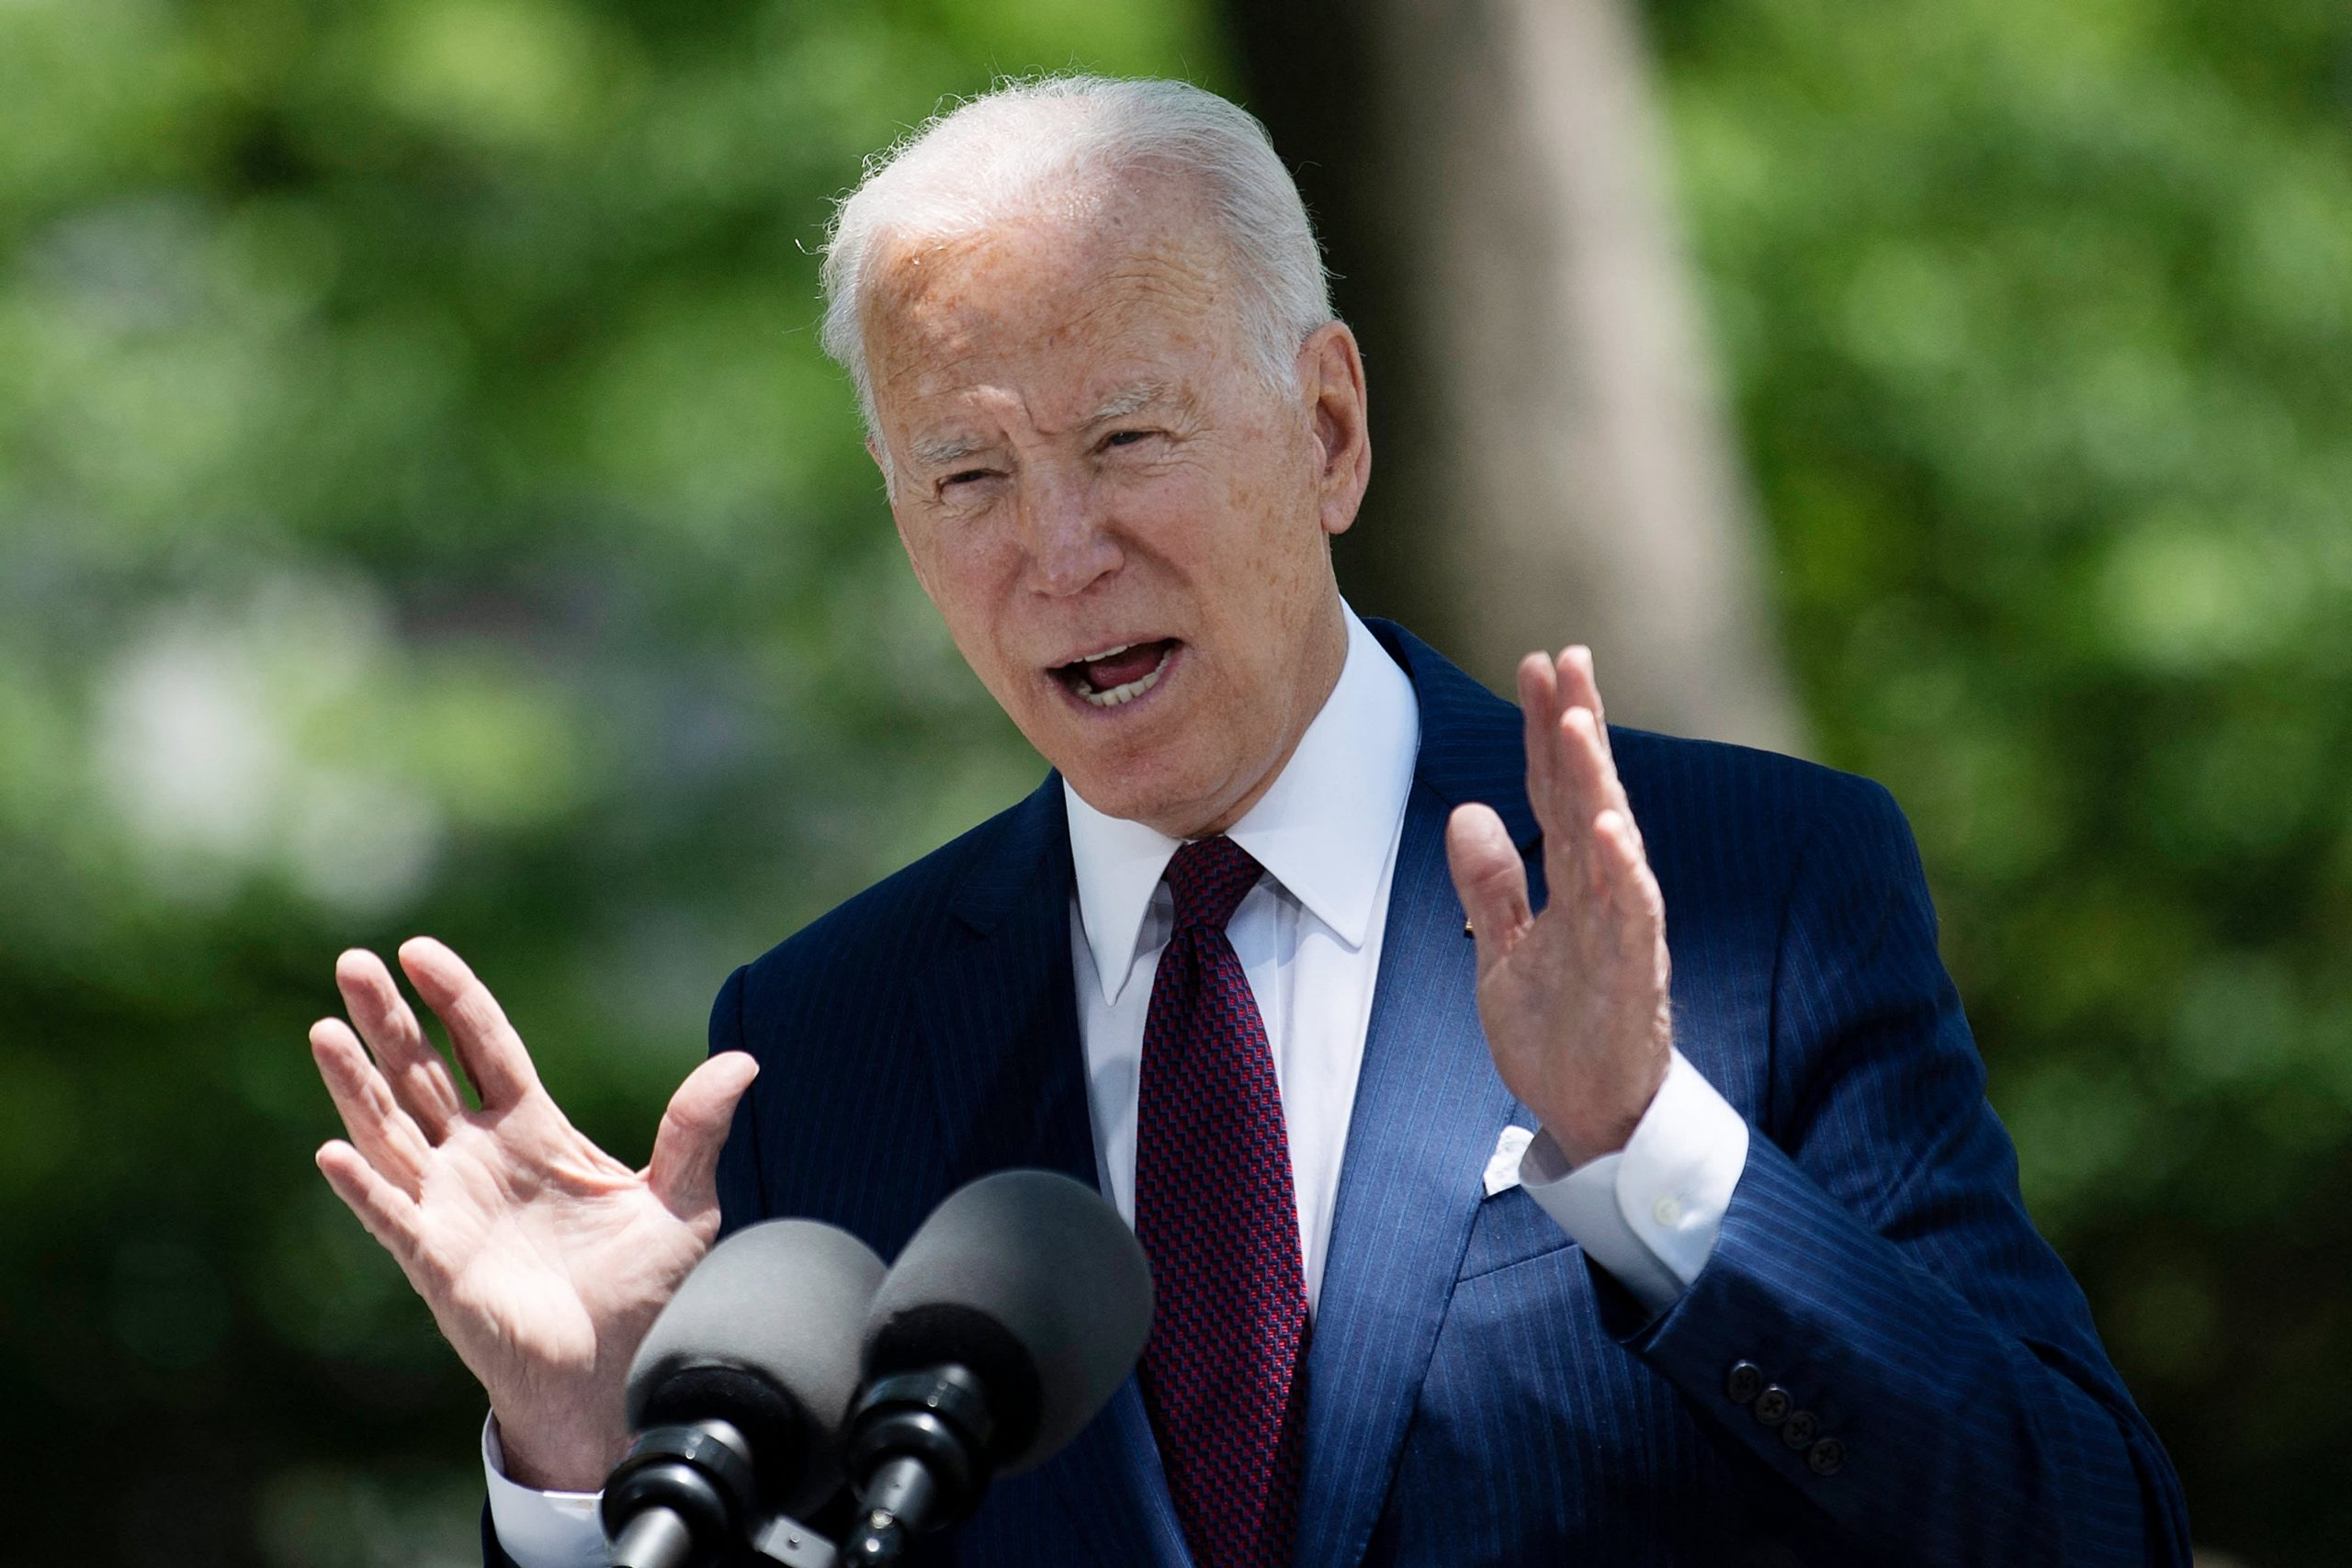 Biden's families plan would cost $700 billion more than projected: Study